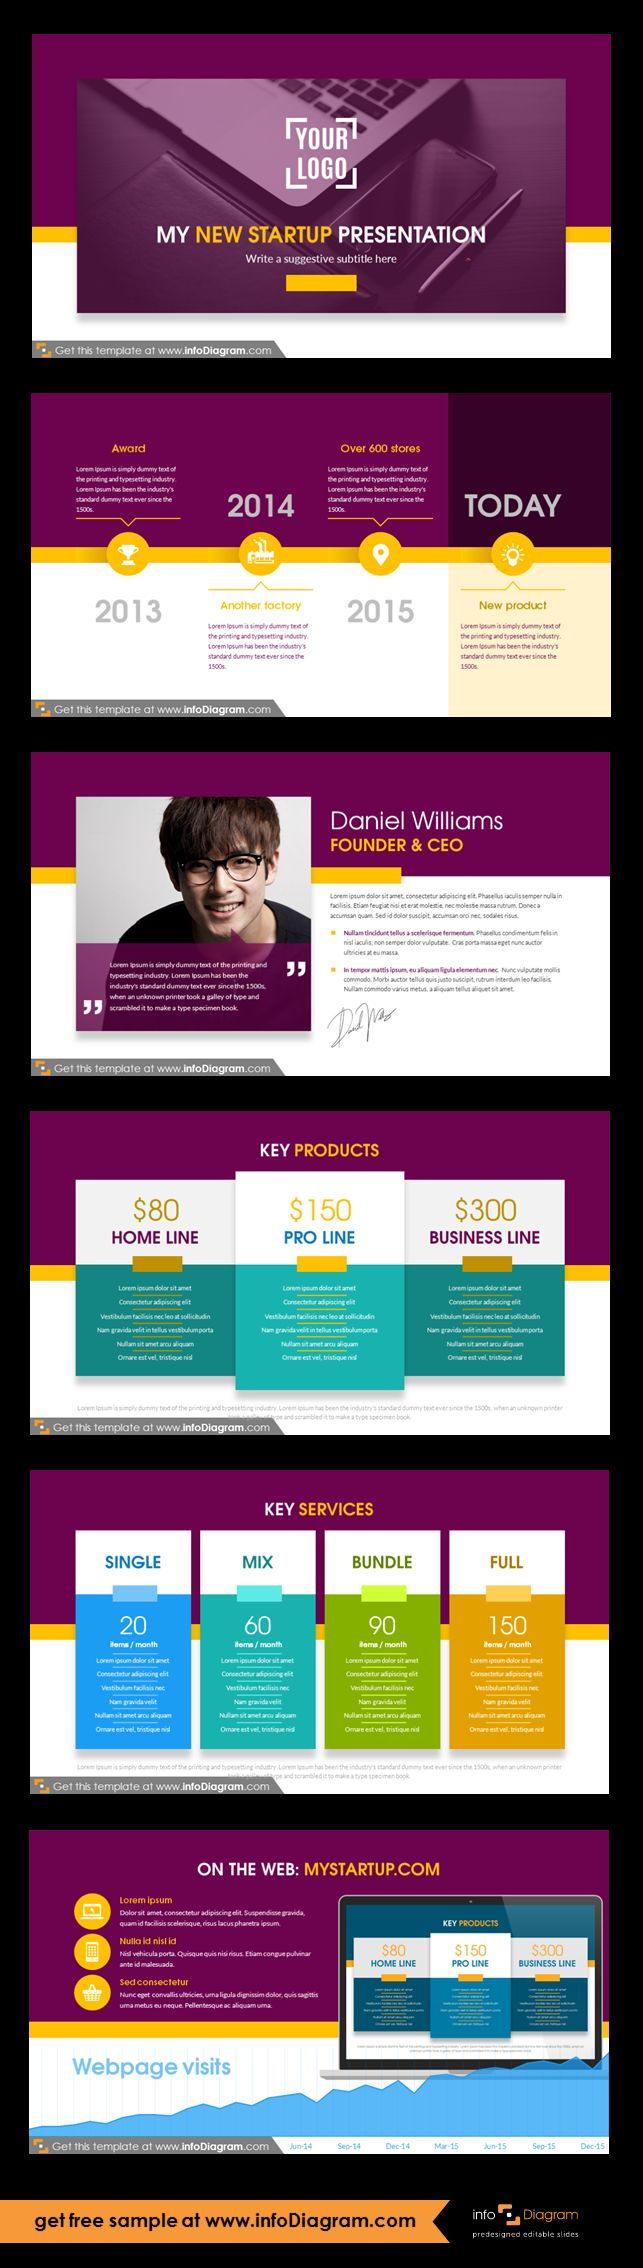 New startup company presentation template and slide deck with several layouts. Predesigned infographics shapes and slide content. Ideal for new business idea presentation or pitch deck for investors.  Startup timeline slides: start and release, solutions and debute, awards and new products. Founder and CEO profile Key products and key services information Startup's website information. Fully editable style, size and colors. Create a powerful business presentation. Present your start-up…